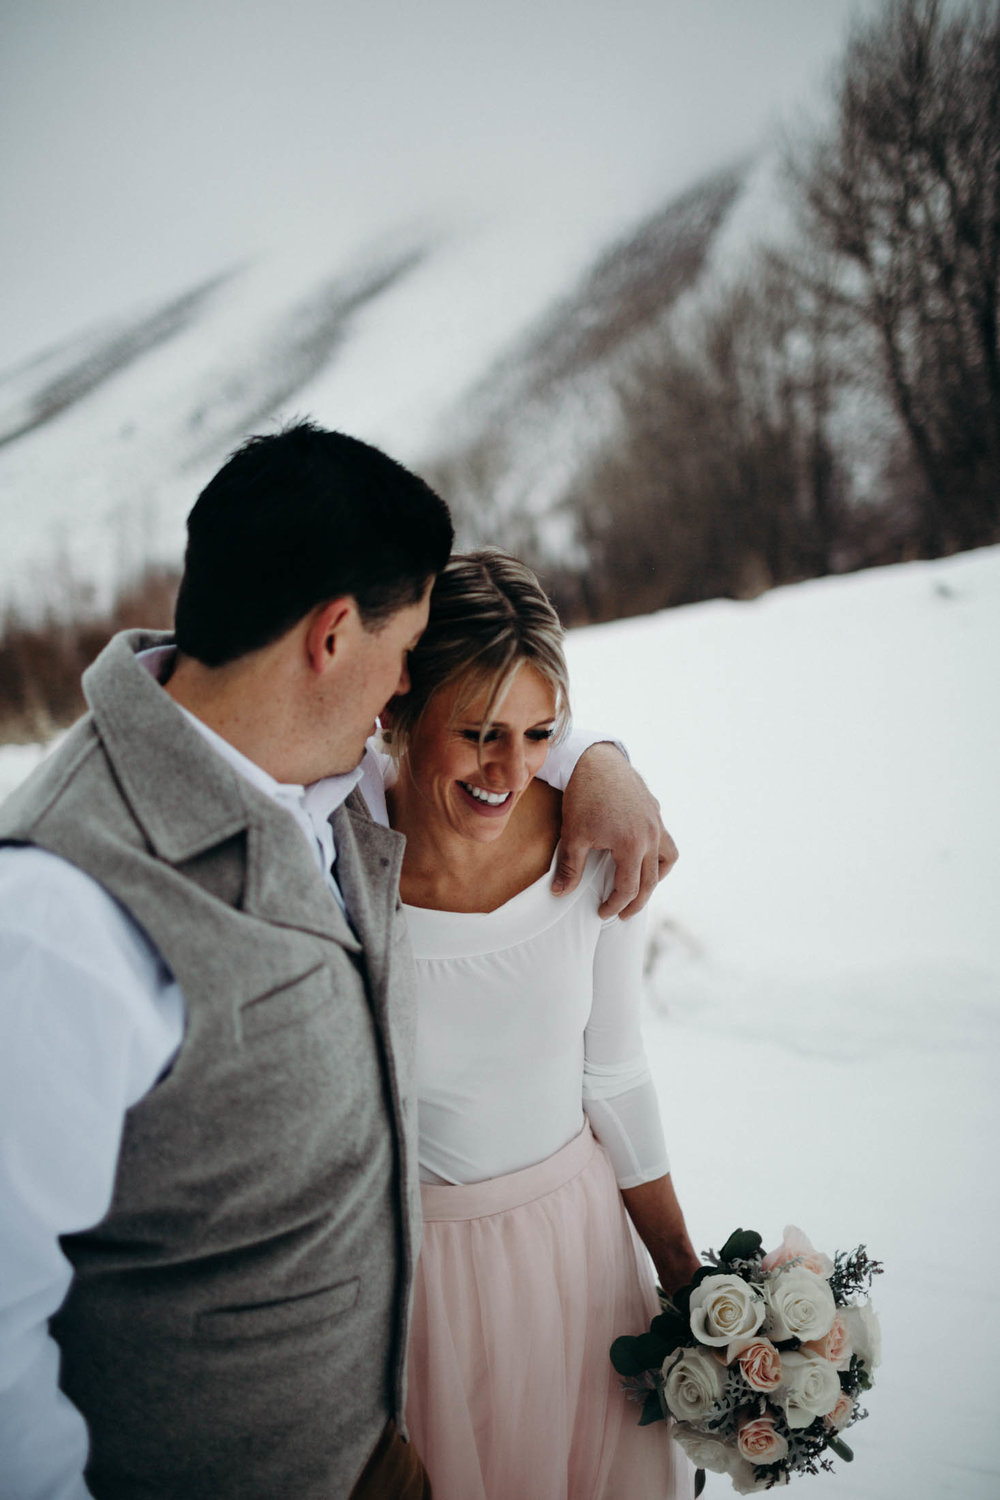 H_J_SunValley_winter_wedding-25.jpg